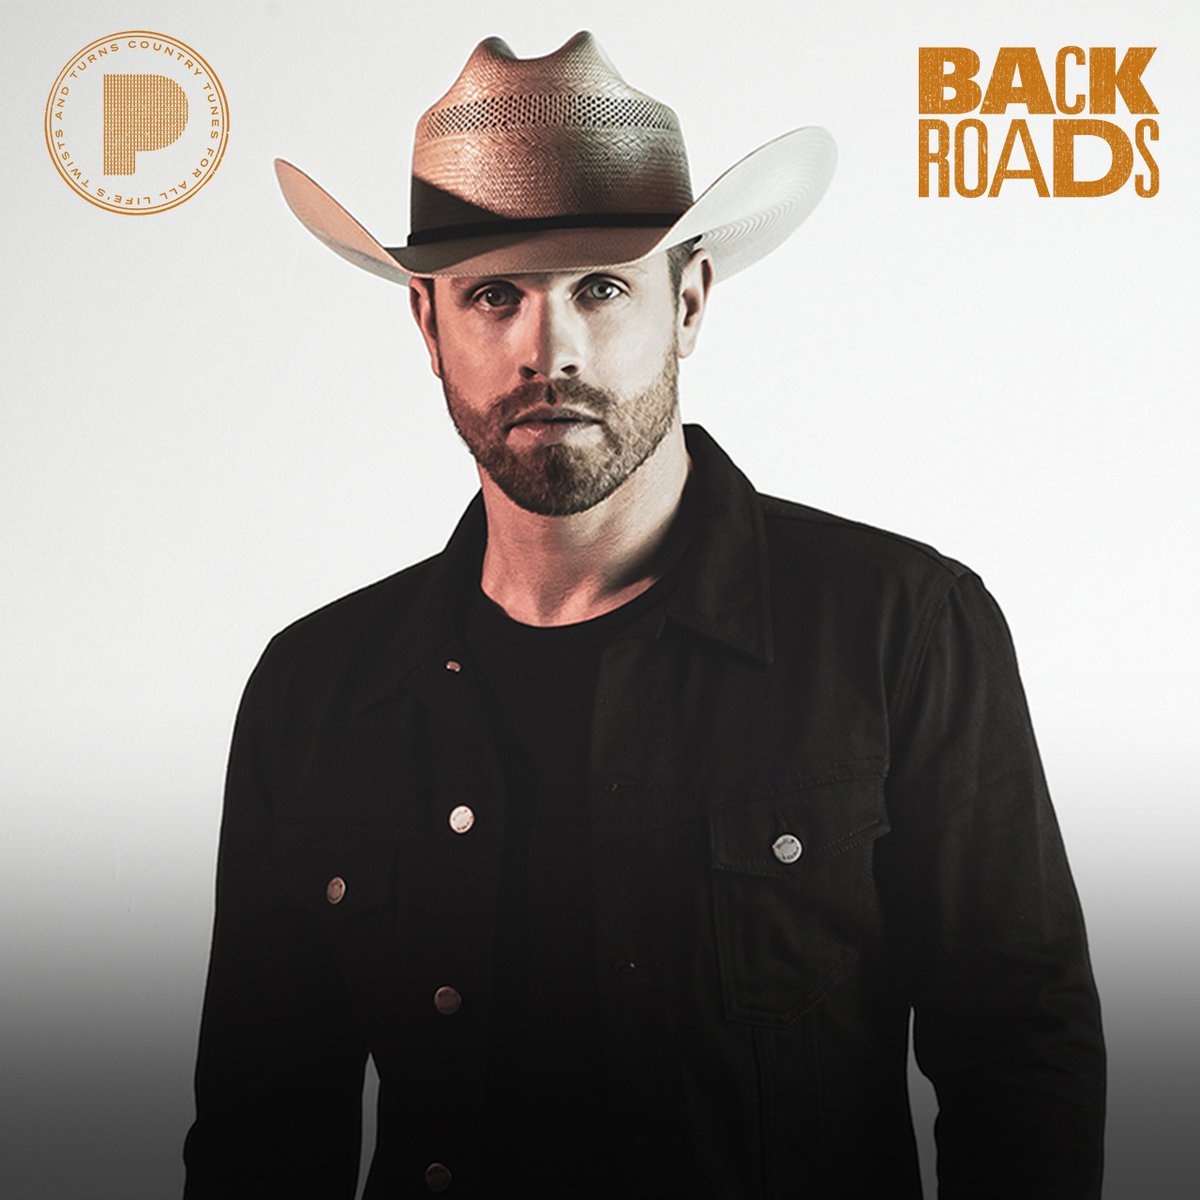 Can't thank y'all enough for the love and support of #Tullahoma. Check out Thinking 'Bout You ft. @Lauren_Alaina on the @pandoramusic Backroads playlist